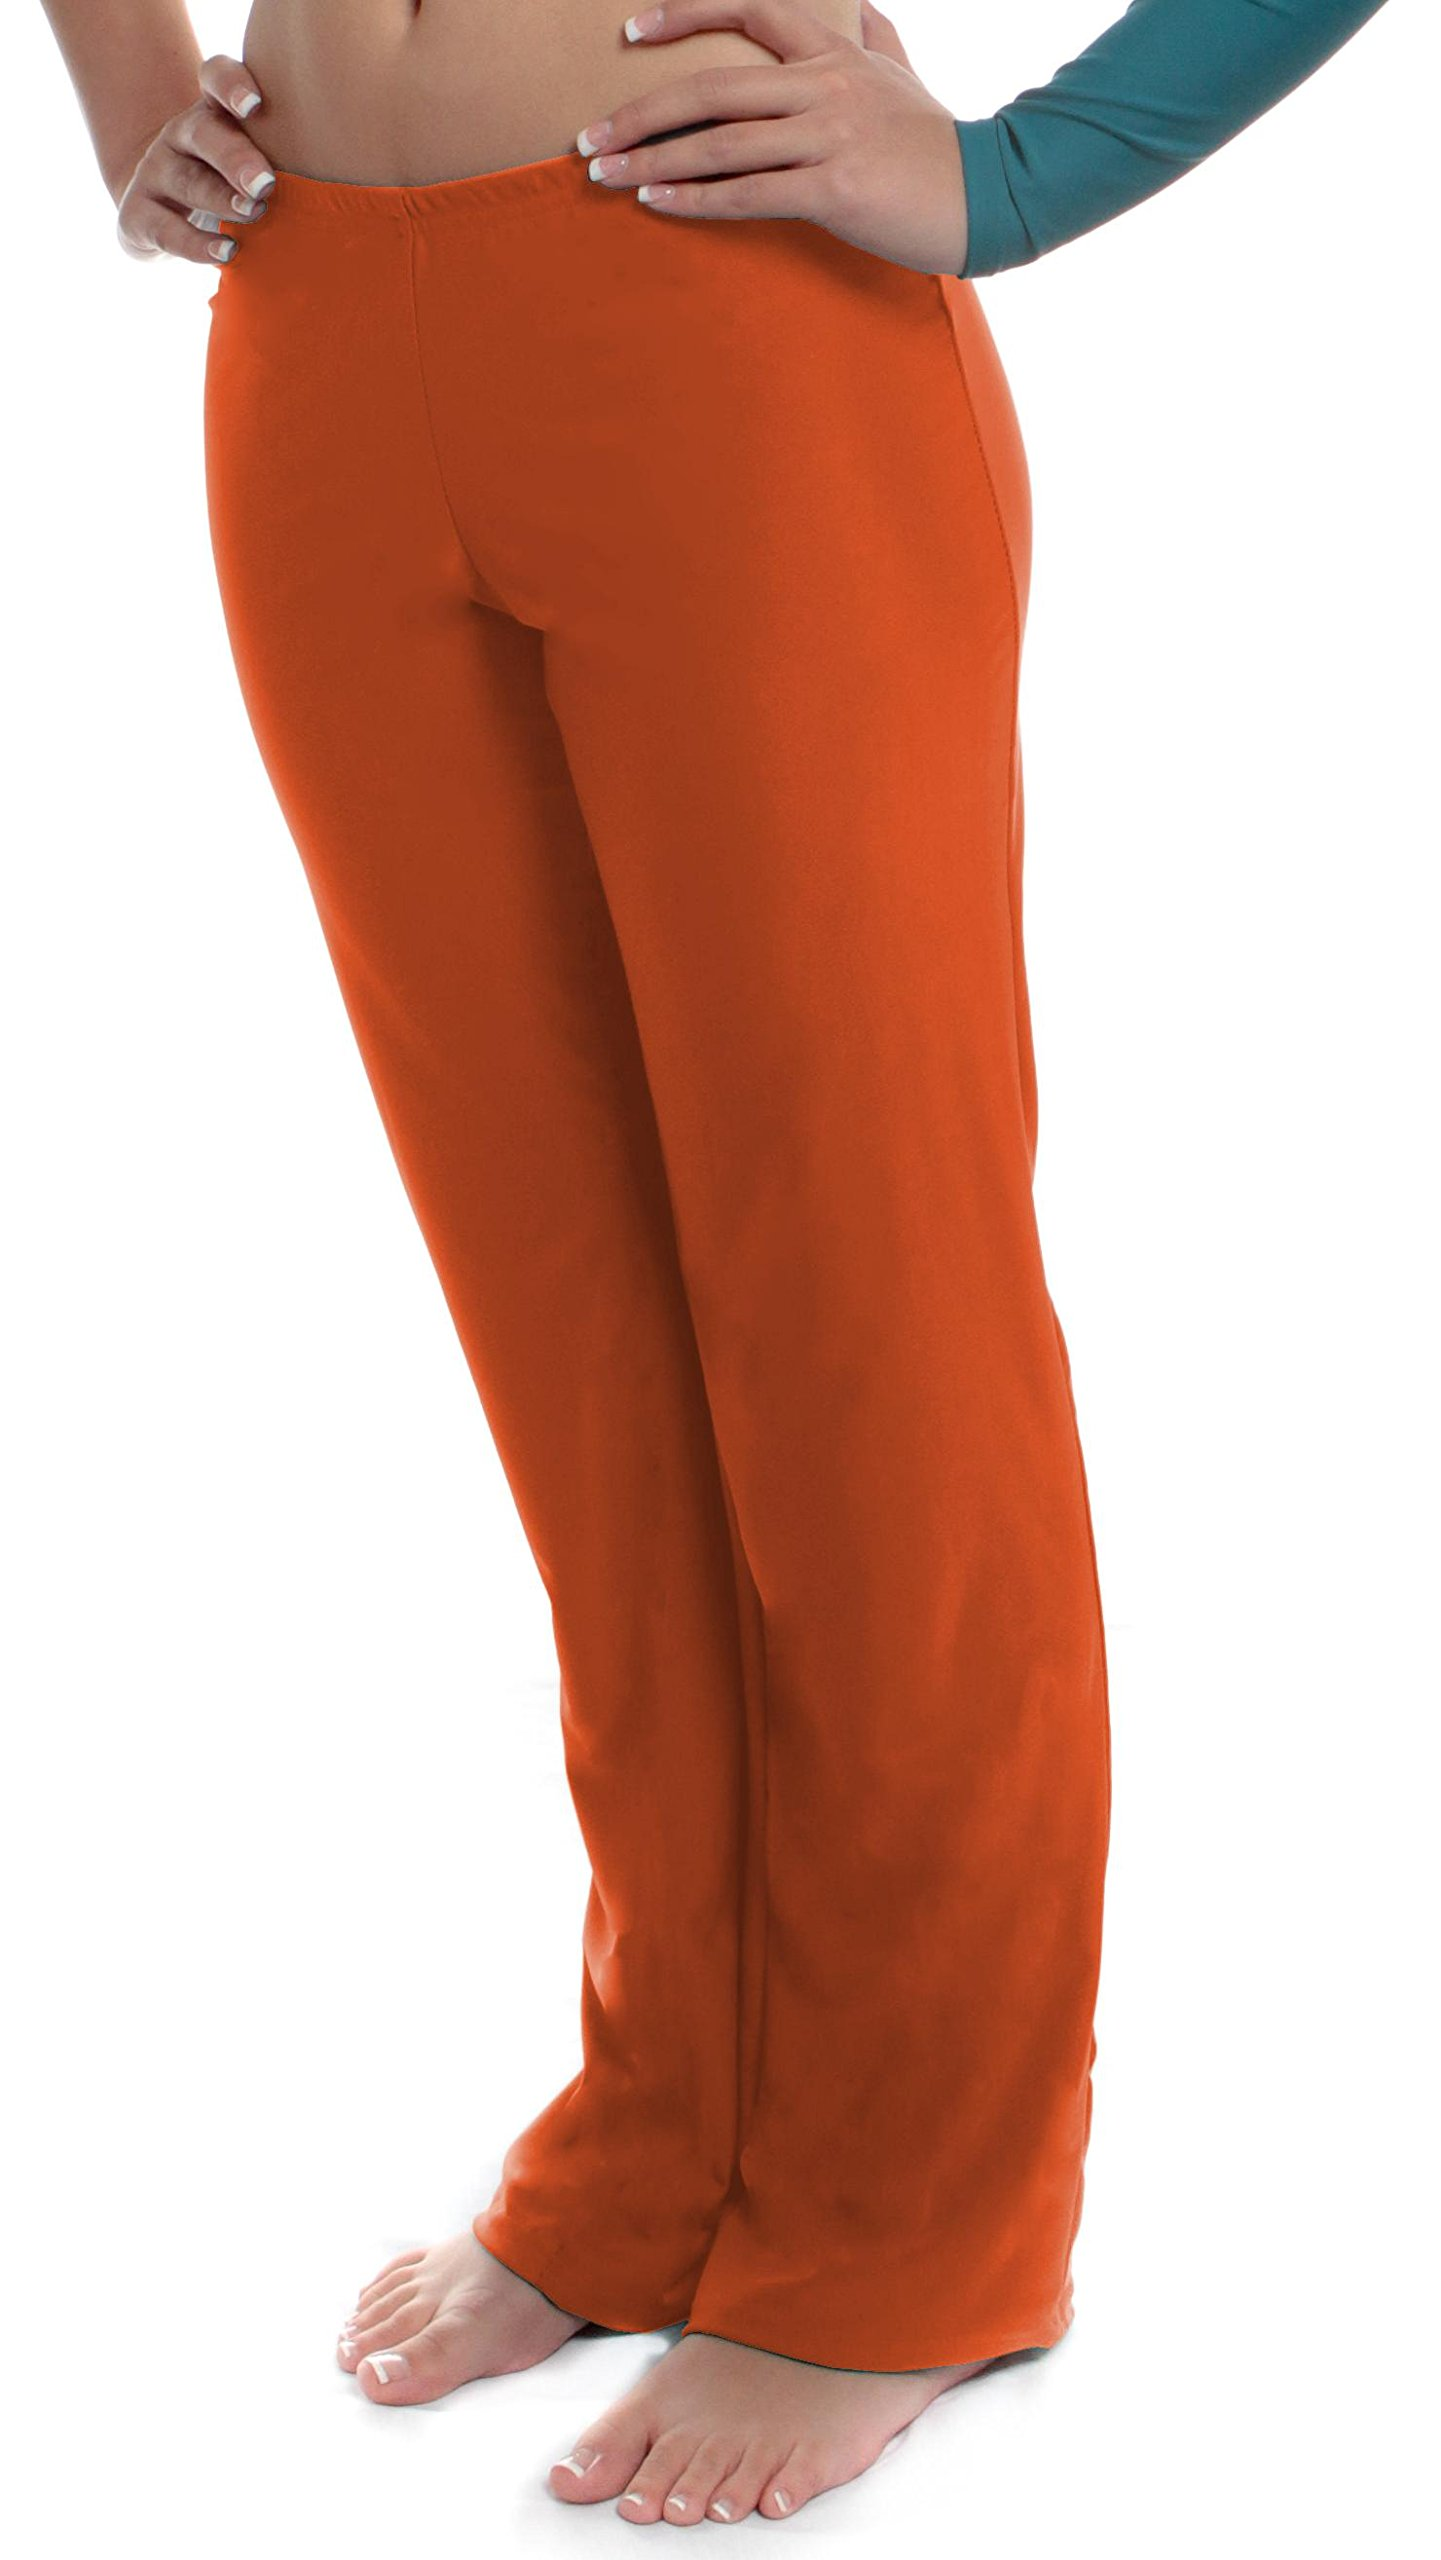 B Dancewear Girls Jazz Pants Small Orange Child and Kid Sizes by B Dancewear